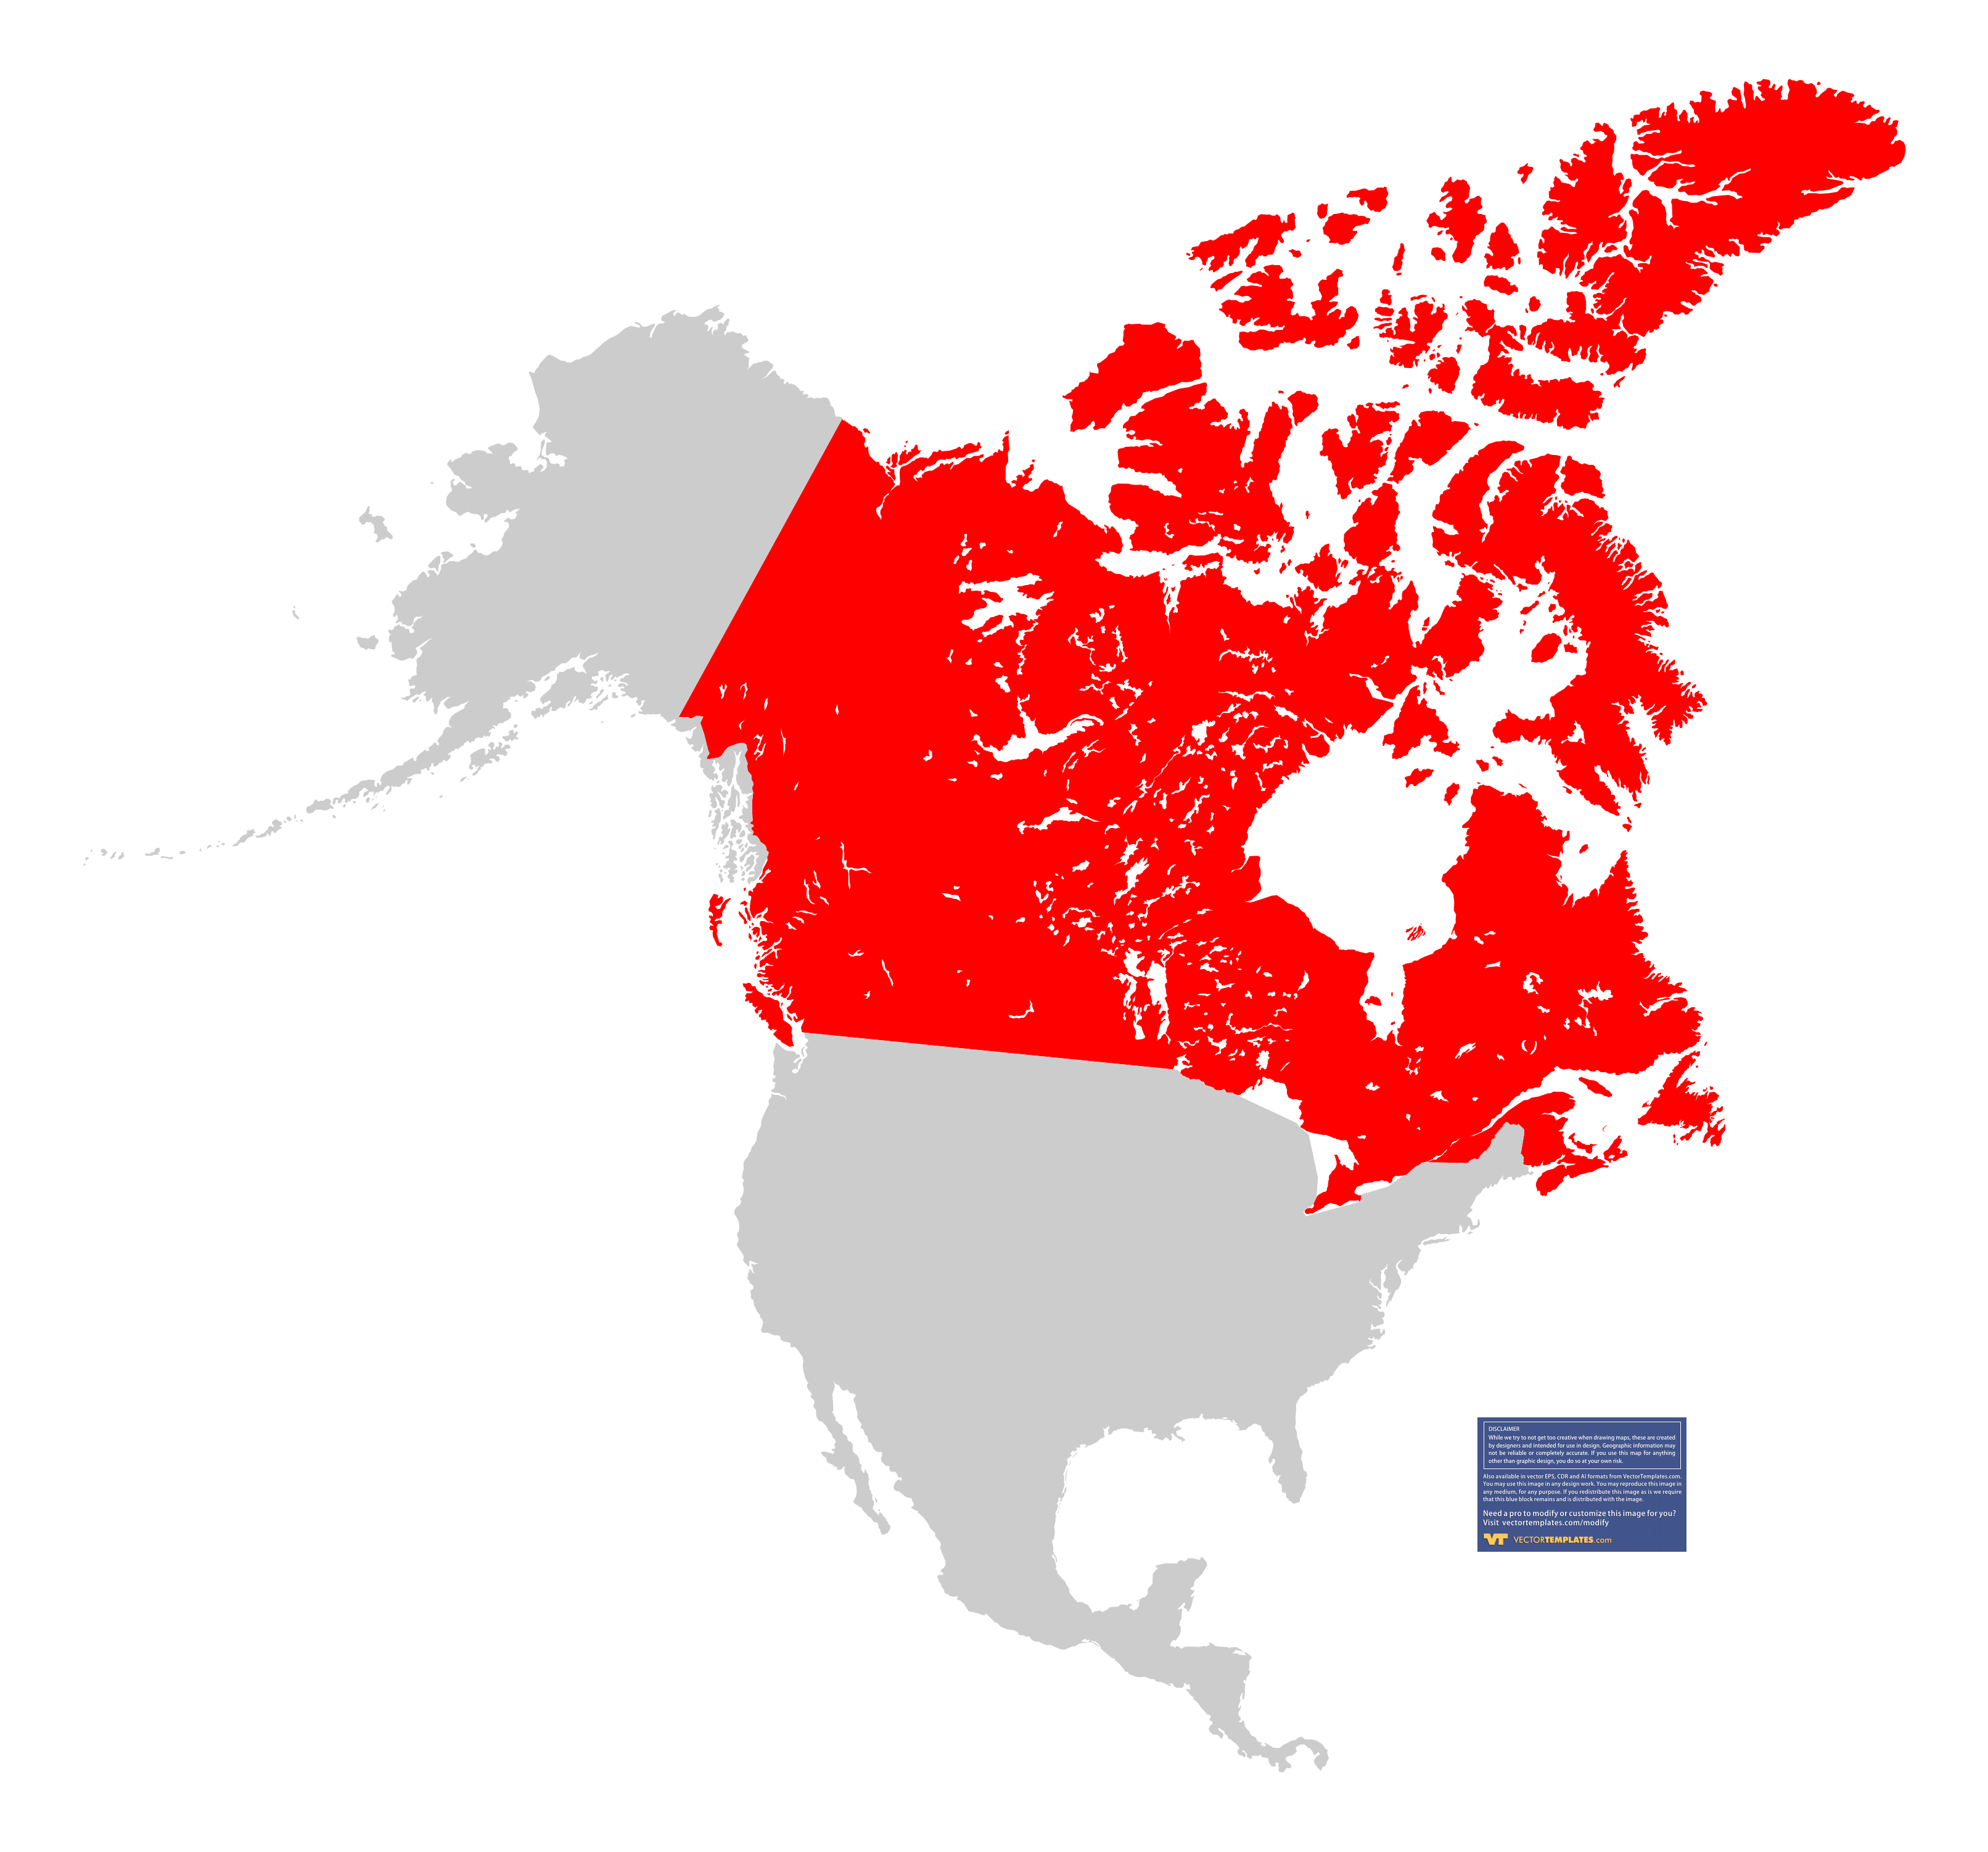 Canada On Map Of The World.Canada Map Vector At Getdrawings Com Free For Personal Use Canada